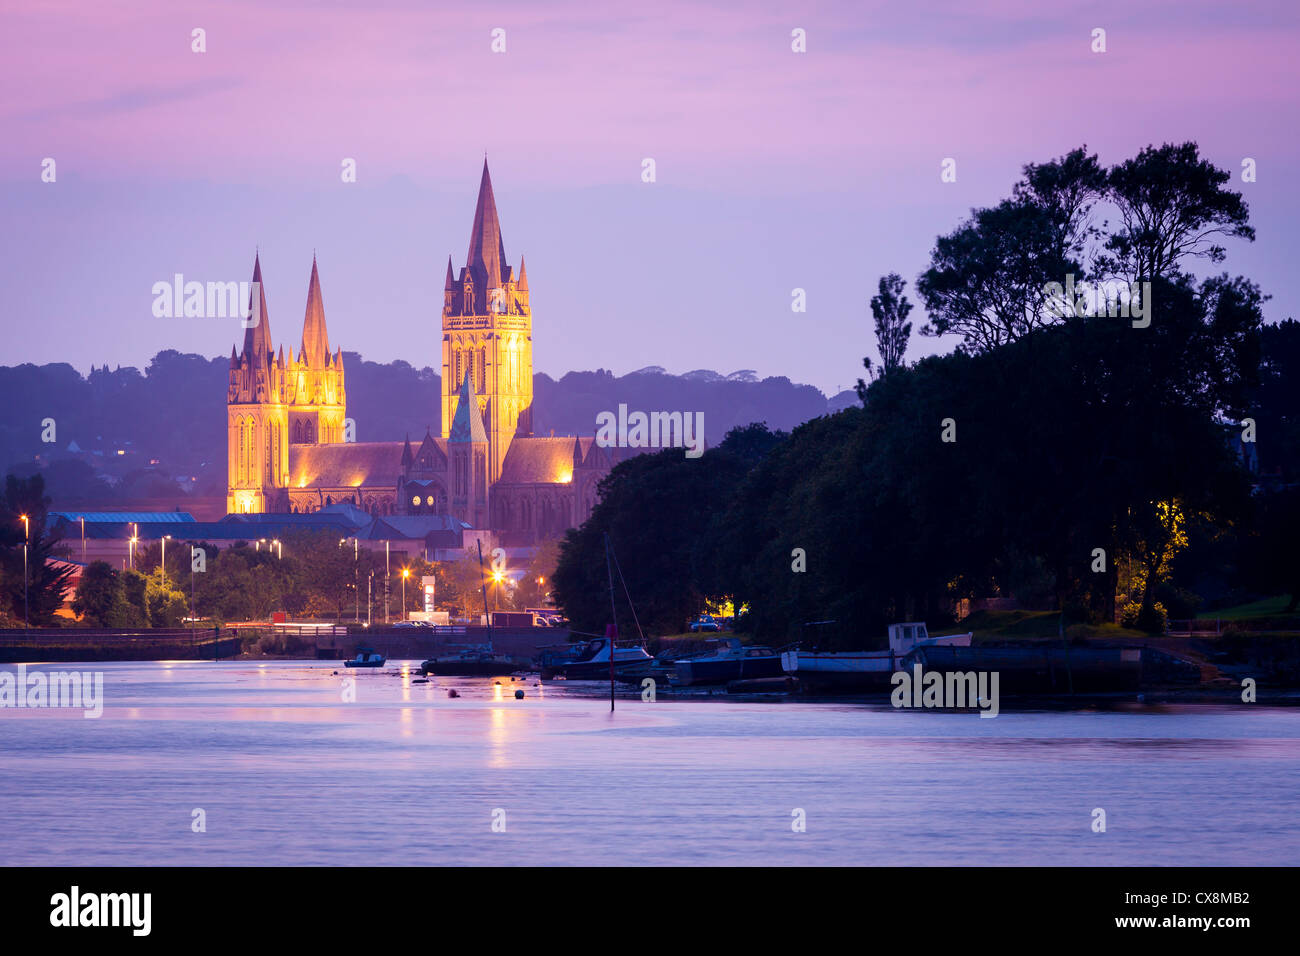 View up river at sunset from Malpas with Truro Cathedral in the background. - Stock Image